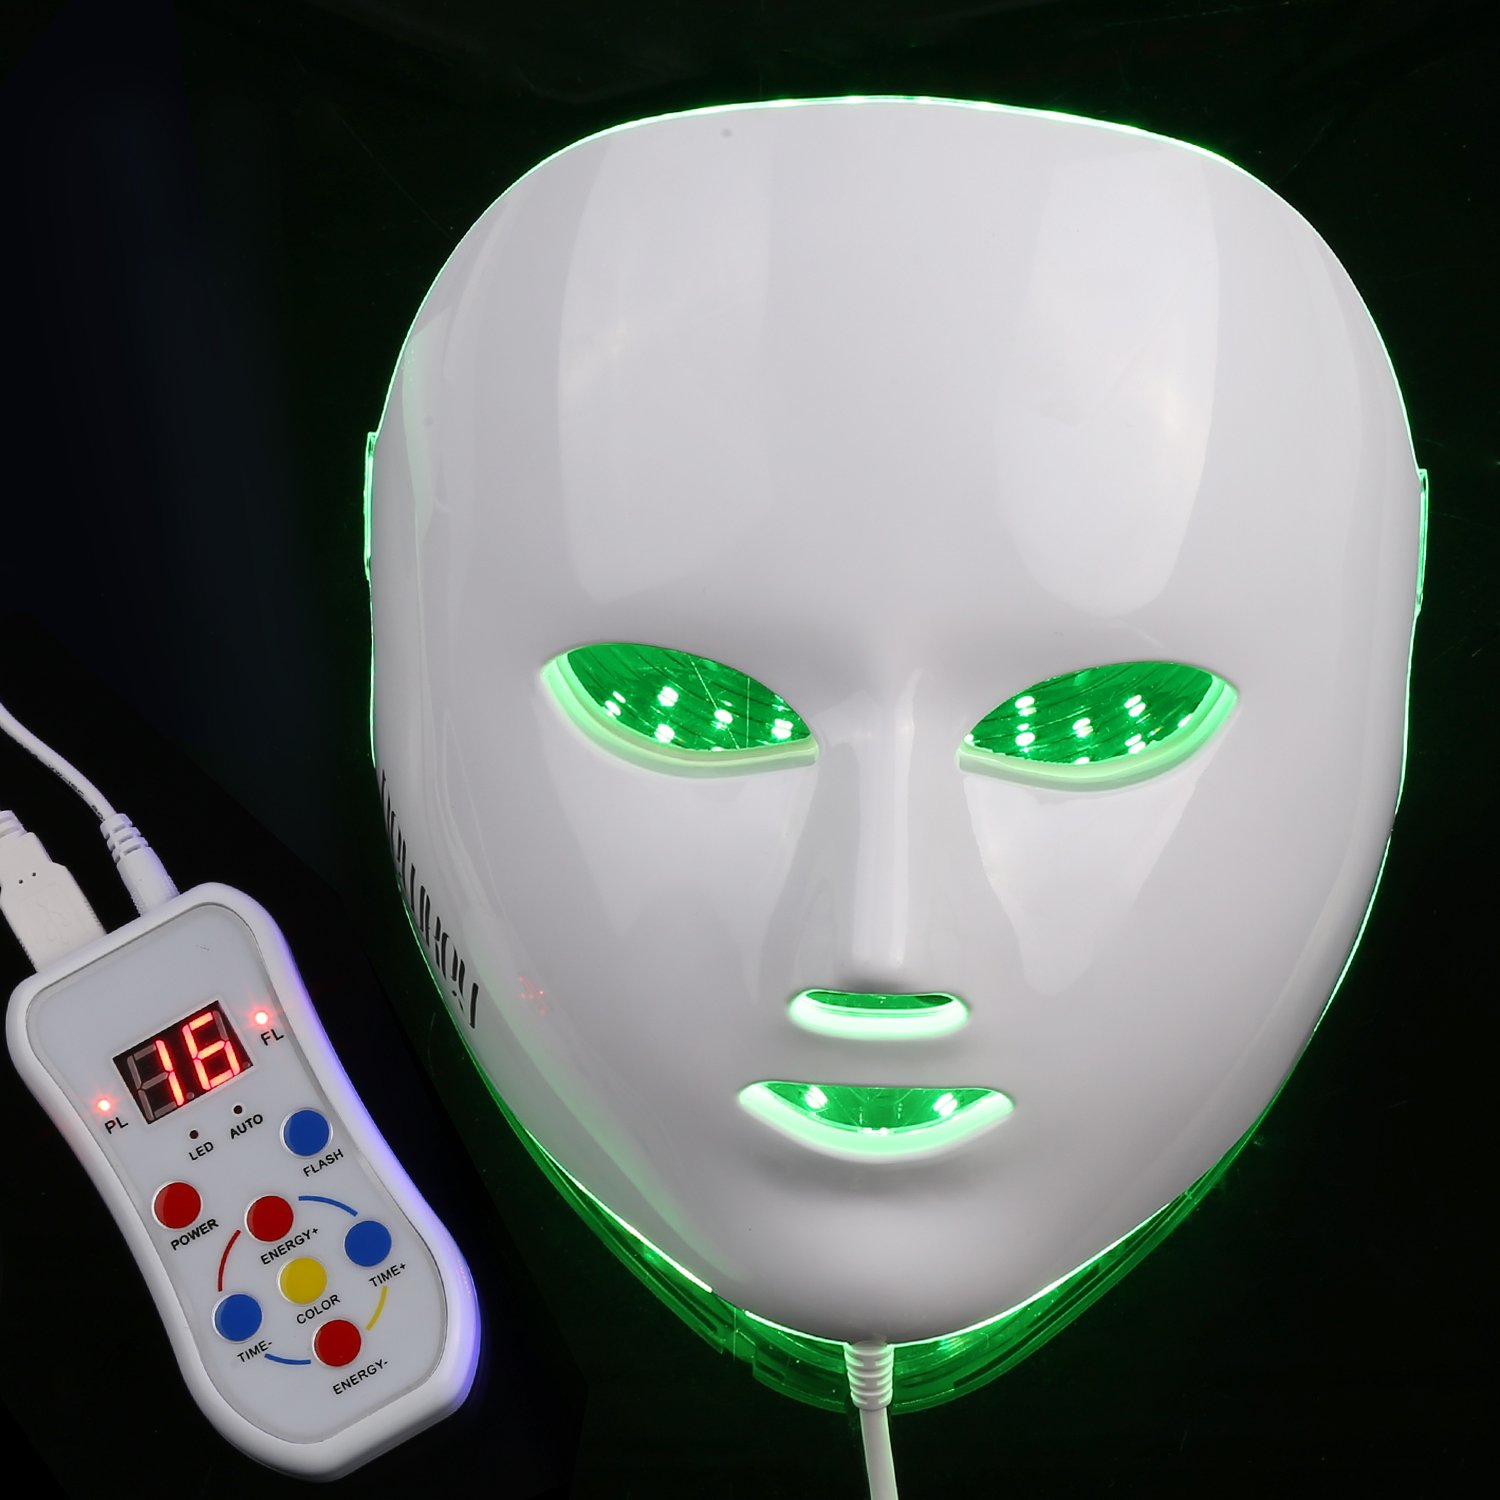 NEWKEY LED Photon Light Therapy Facial Mask Professional Anti Aging Skin Care Device for Face Whitening and Smooth - 1 YEAR WARRANTY by NEWKEY (Image #3)